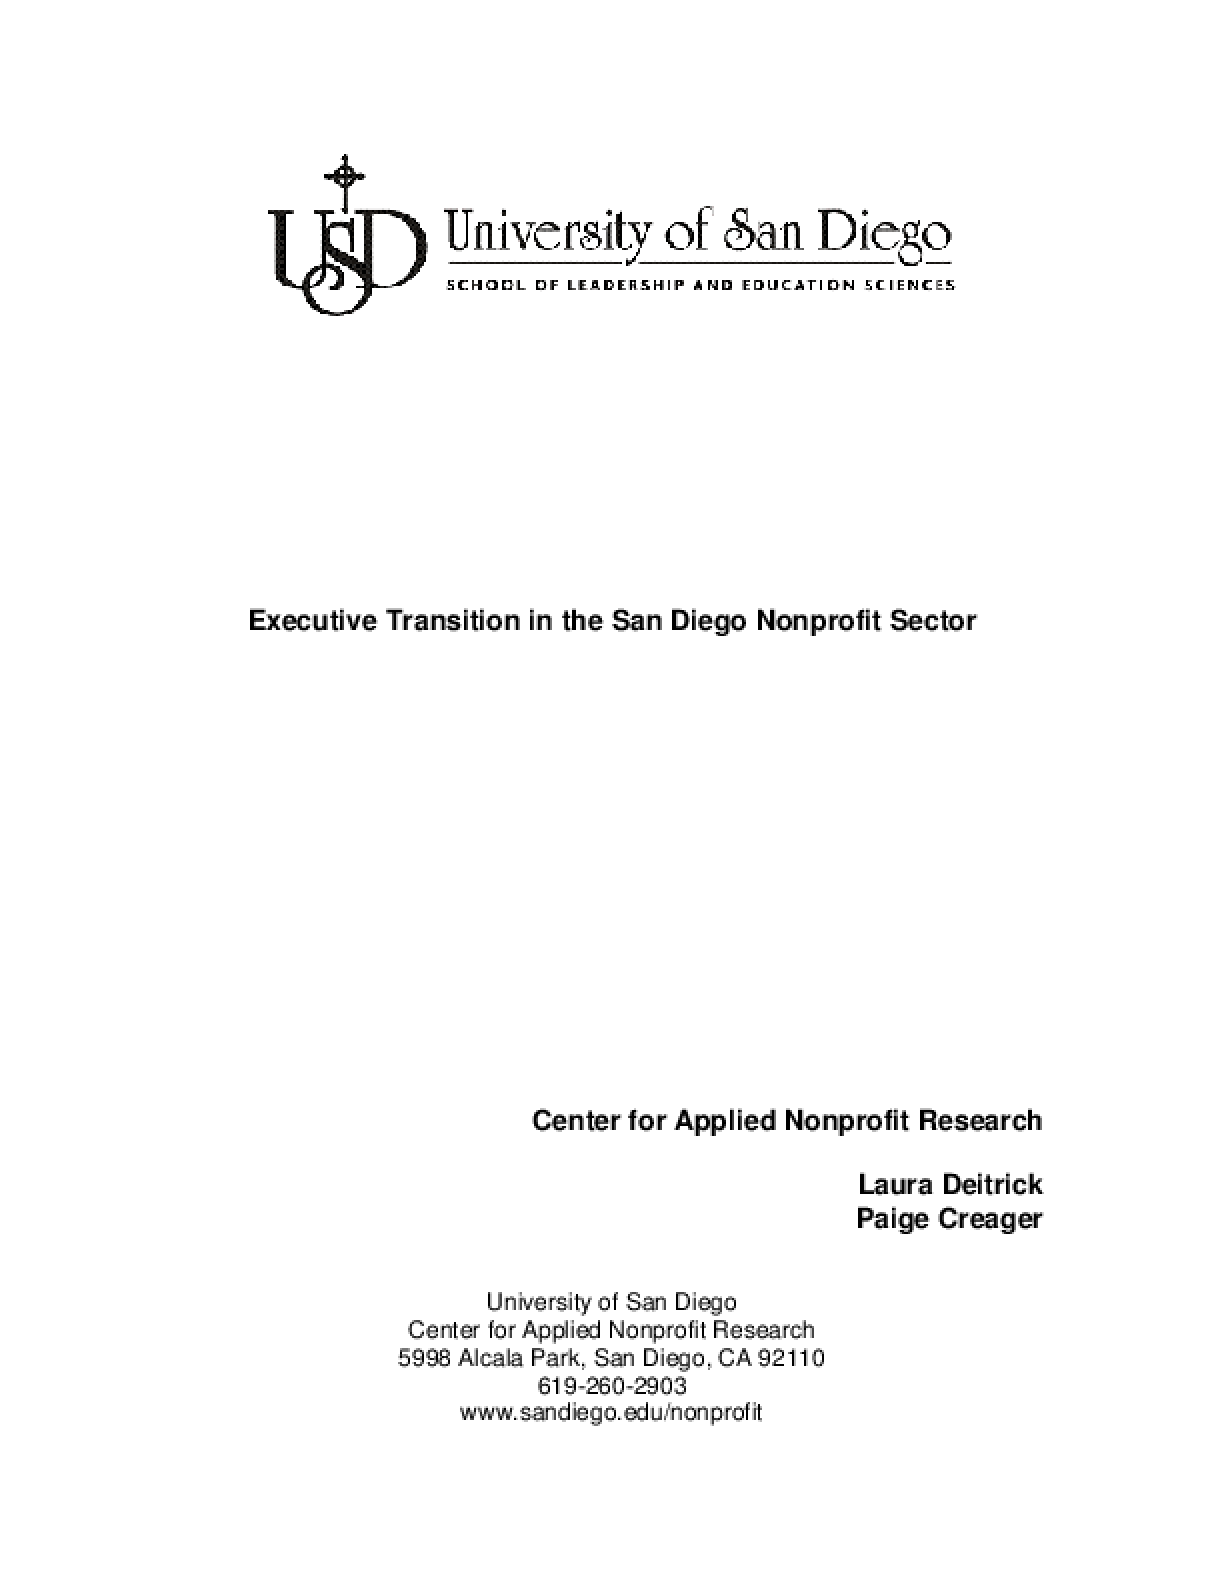 Executive Transition in the San Diego Nonprofit Sector - Executive Summary